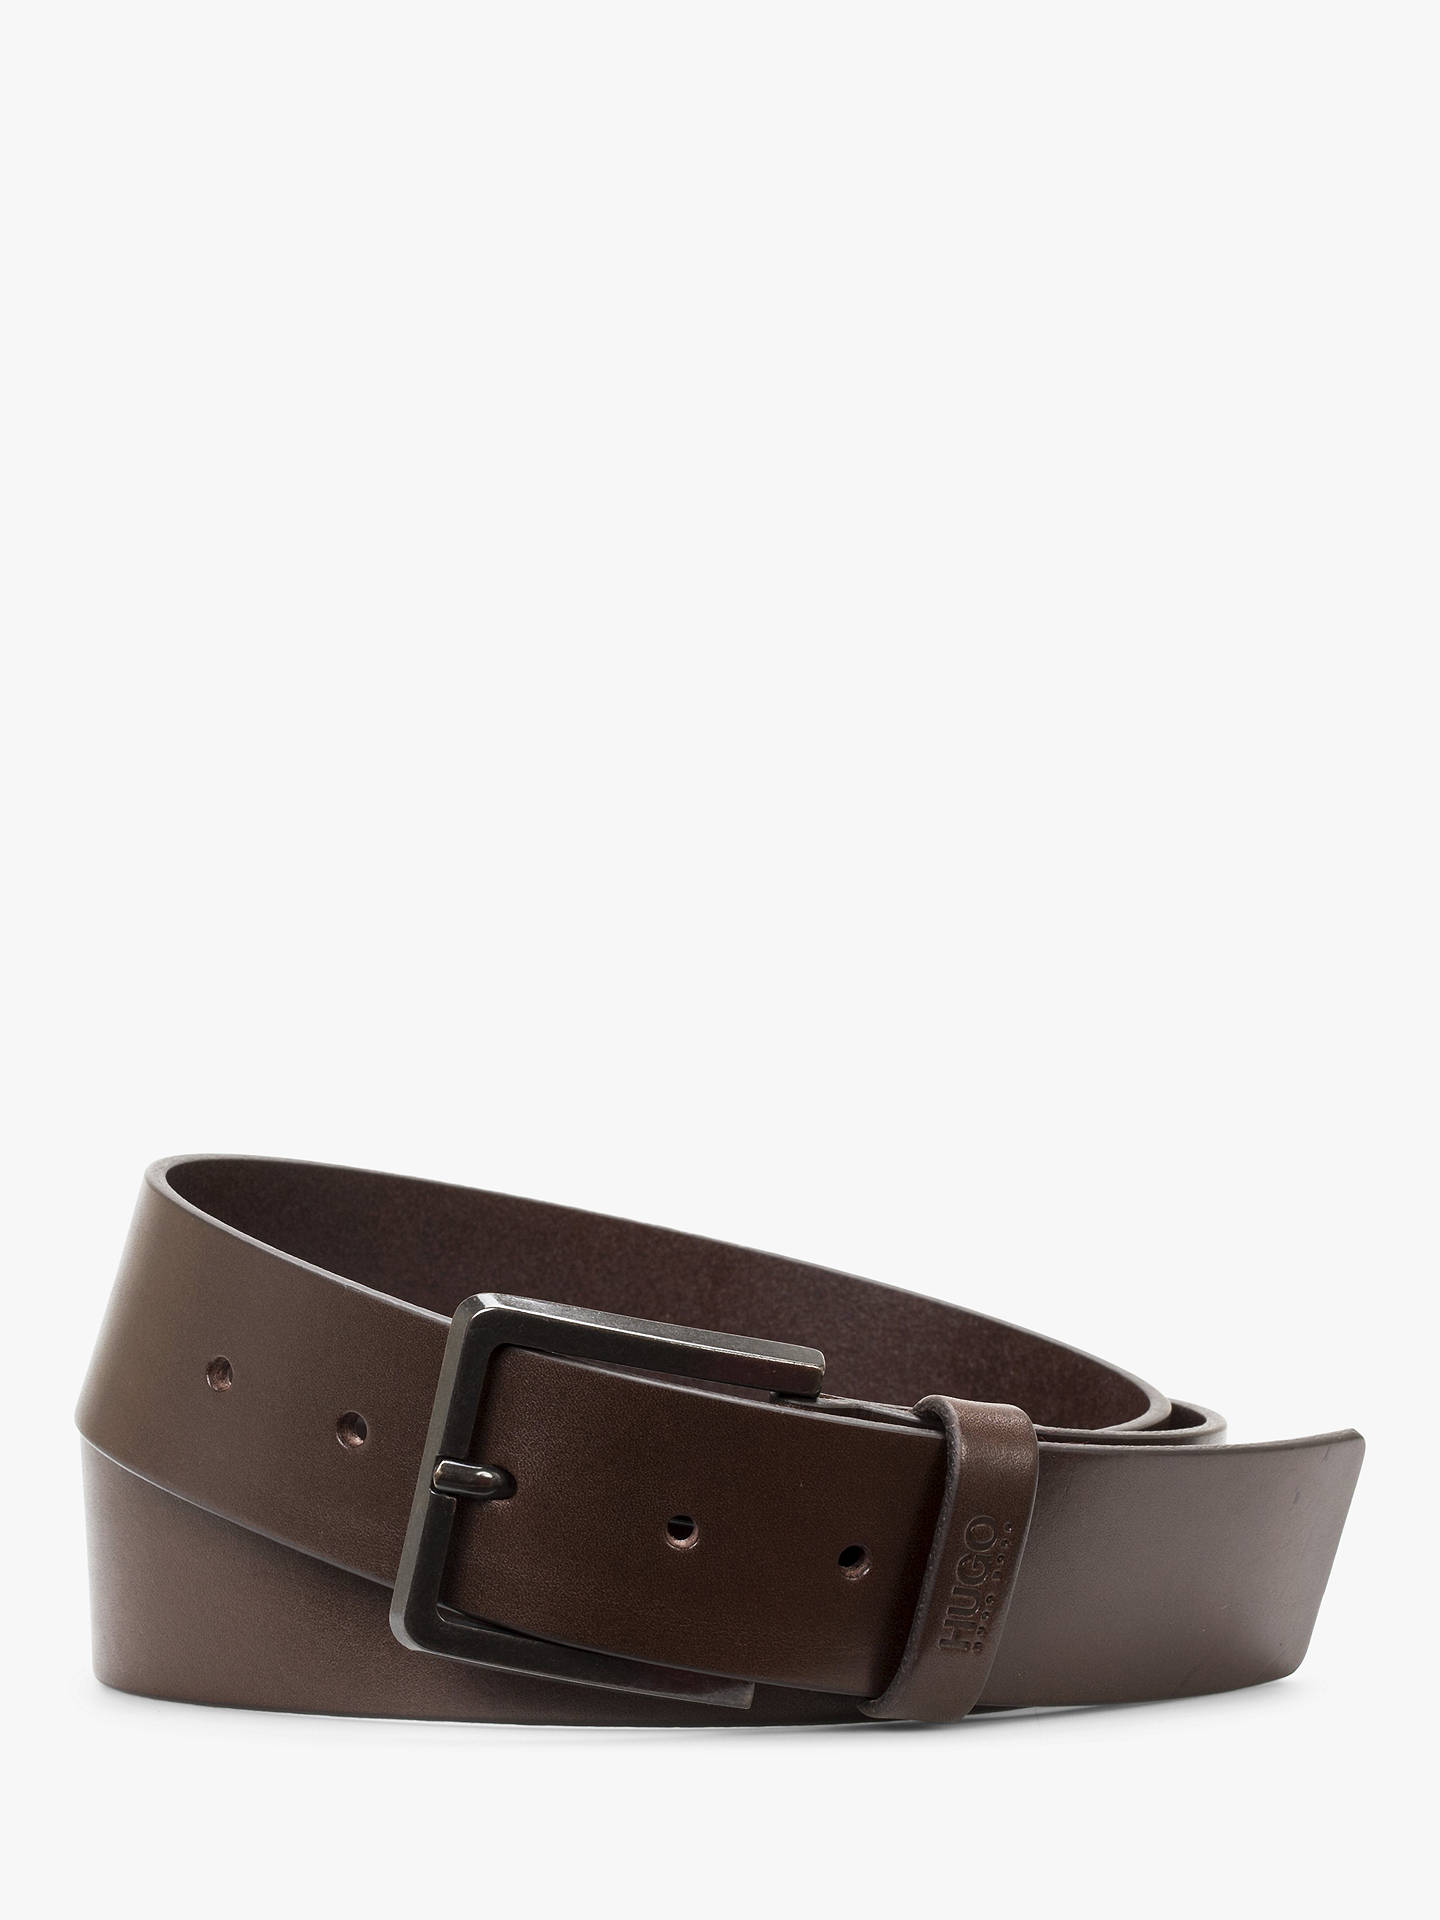 a8be097801c Buy HUGO by Hugo Boss Gionio Leather Belt, Brown, S Online at johnlewis.